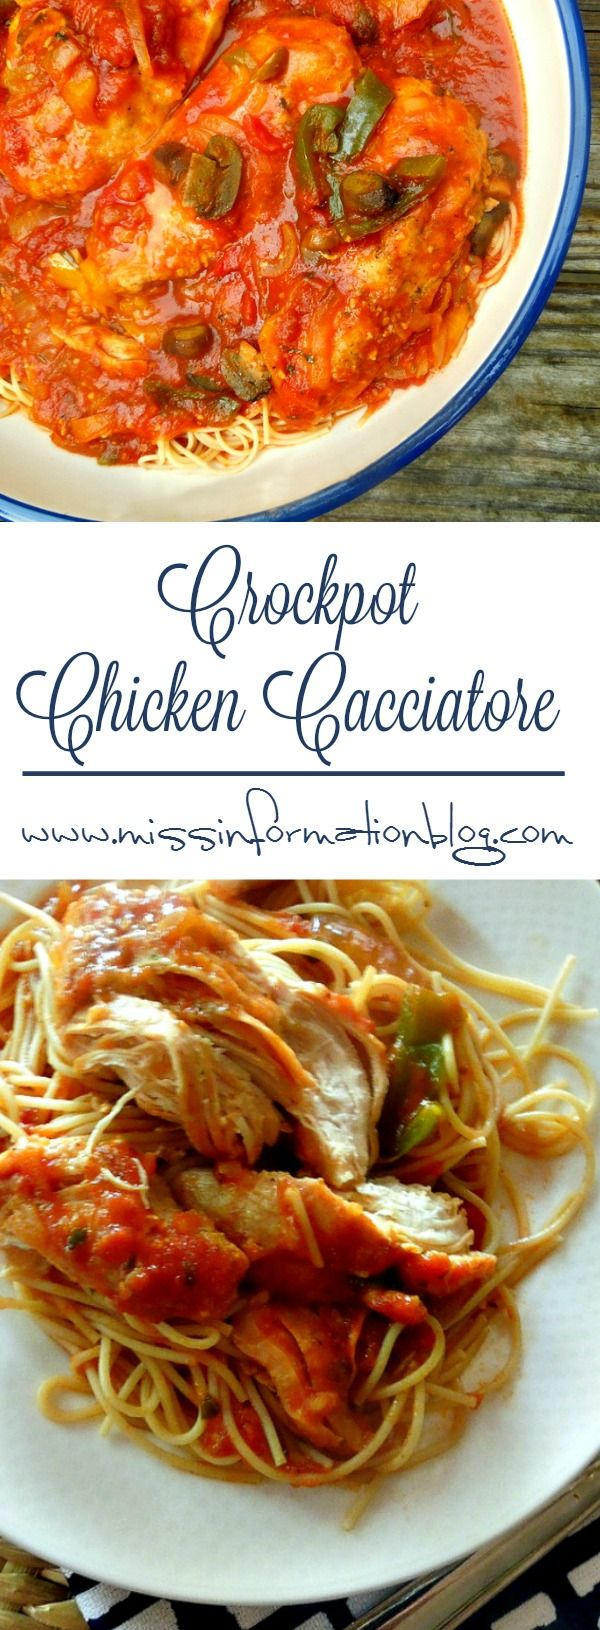 Taste the difference in this Slow Cooker Chicken Cacciatore using pasta sauce and fresh veggies to make a family style meal easy.